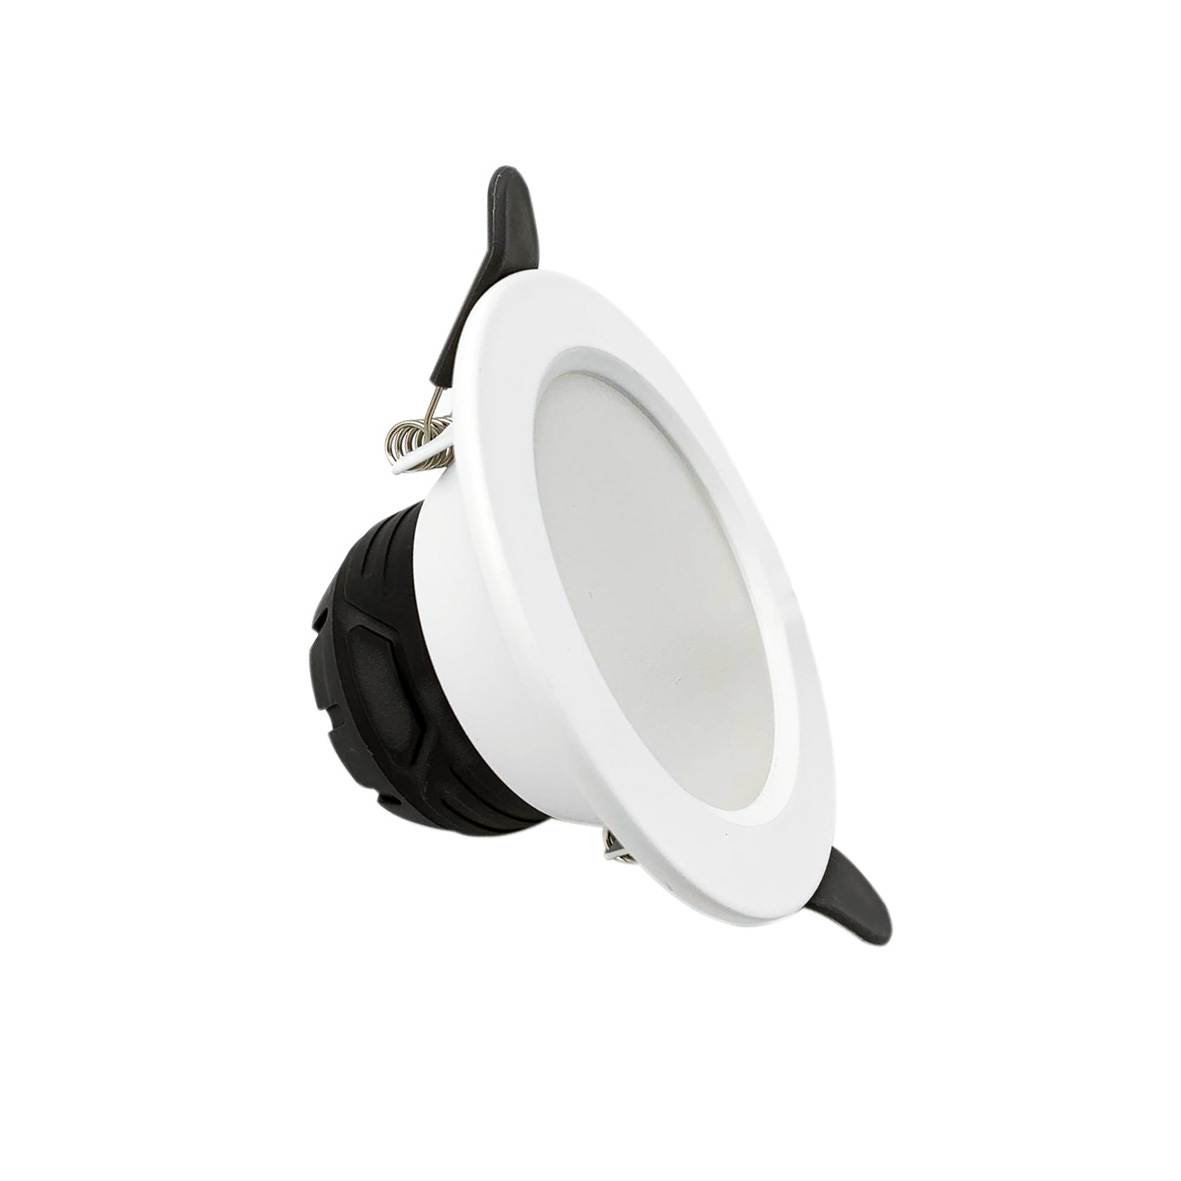 LED spotlight 6W recessed diameter 100mm F. I. 75-95mm WHITE Fi51-6W